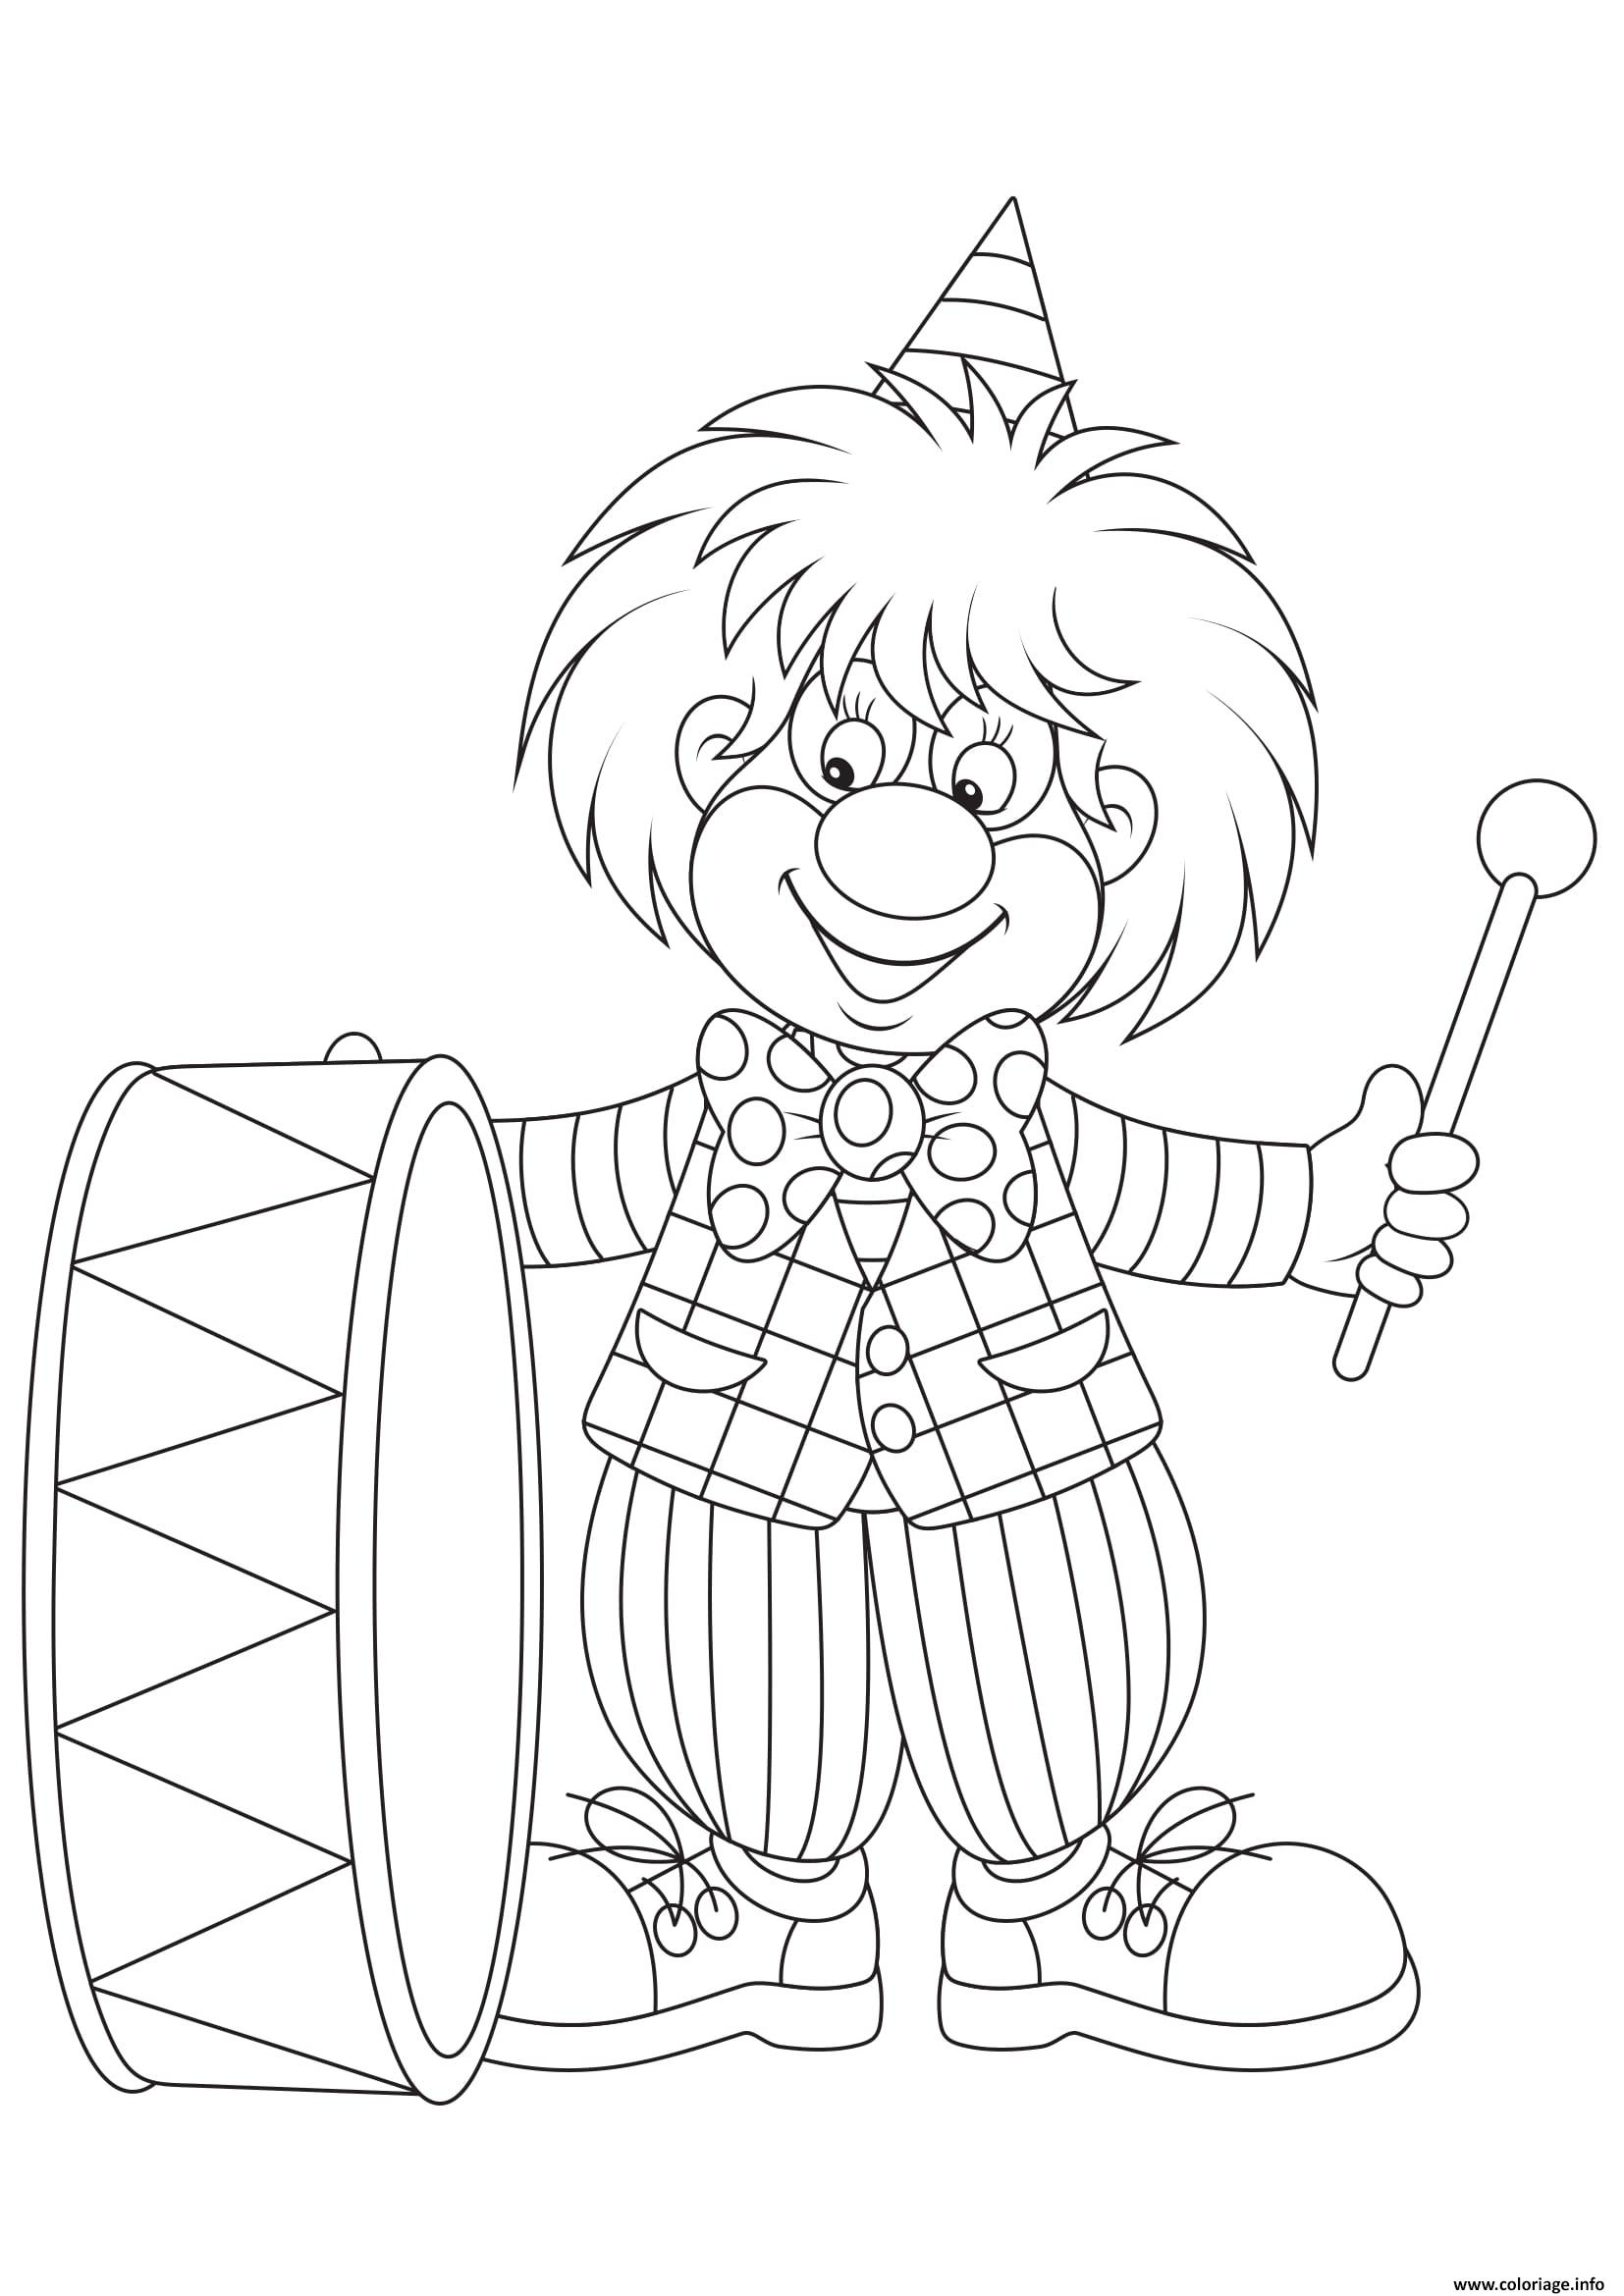 Coloriage clown imprimer www - Coloriage clown a imprimer ...